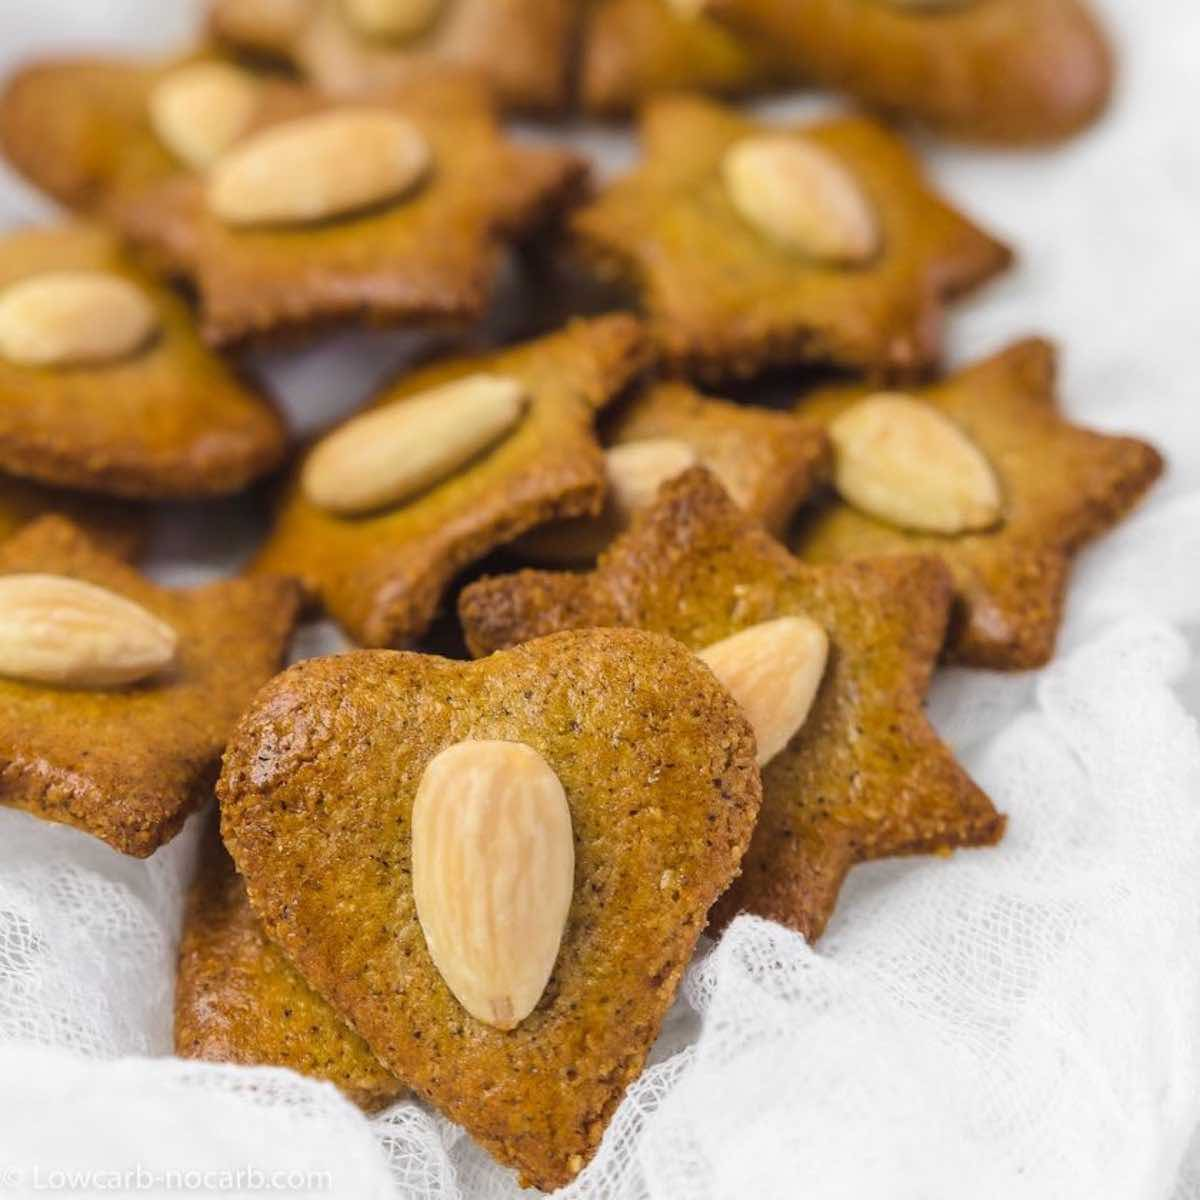 Keto Christmas Cookies with almonds as deco